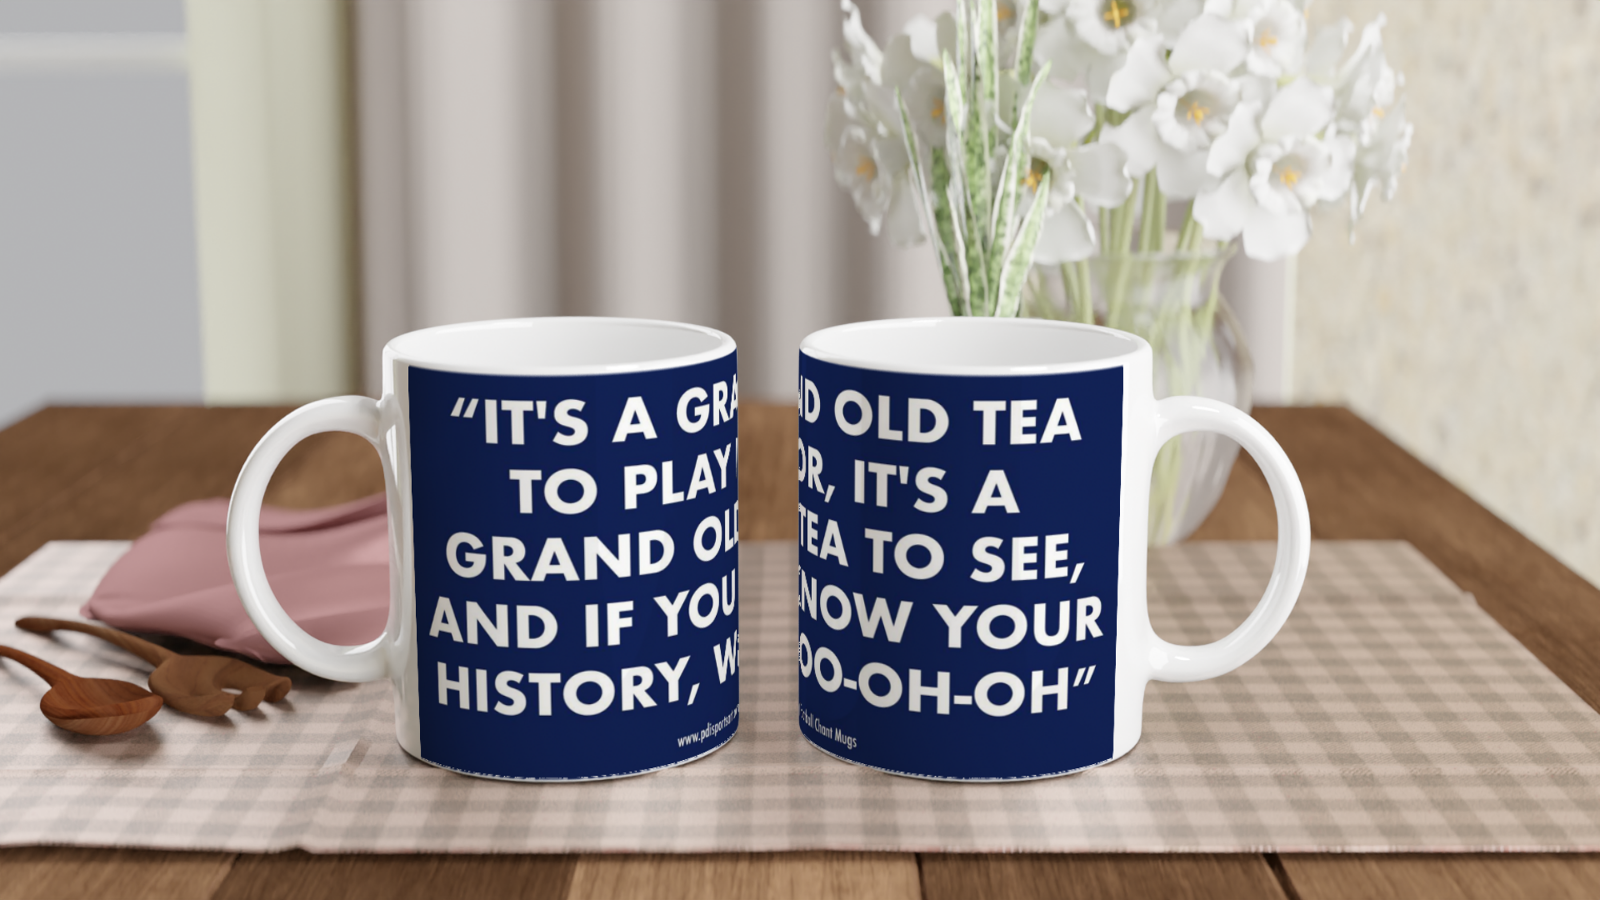 White ceramic Tottenham grand old tea chant mug